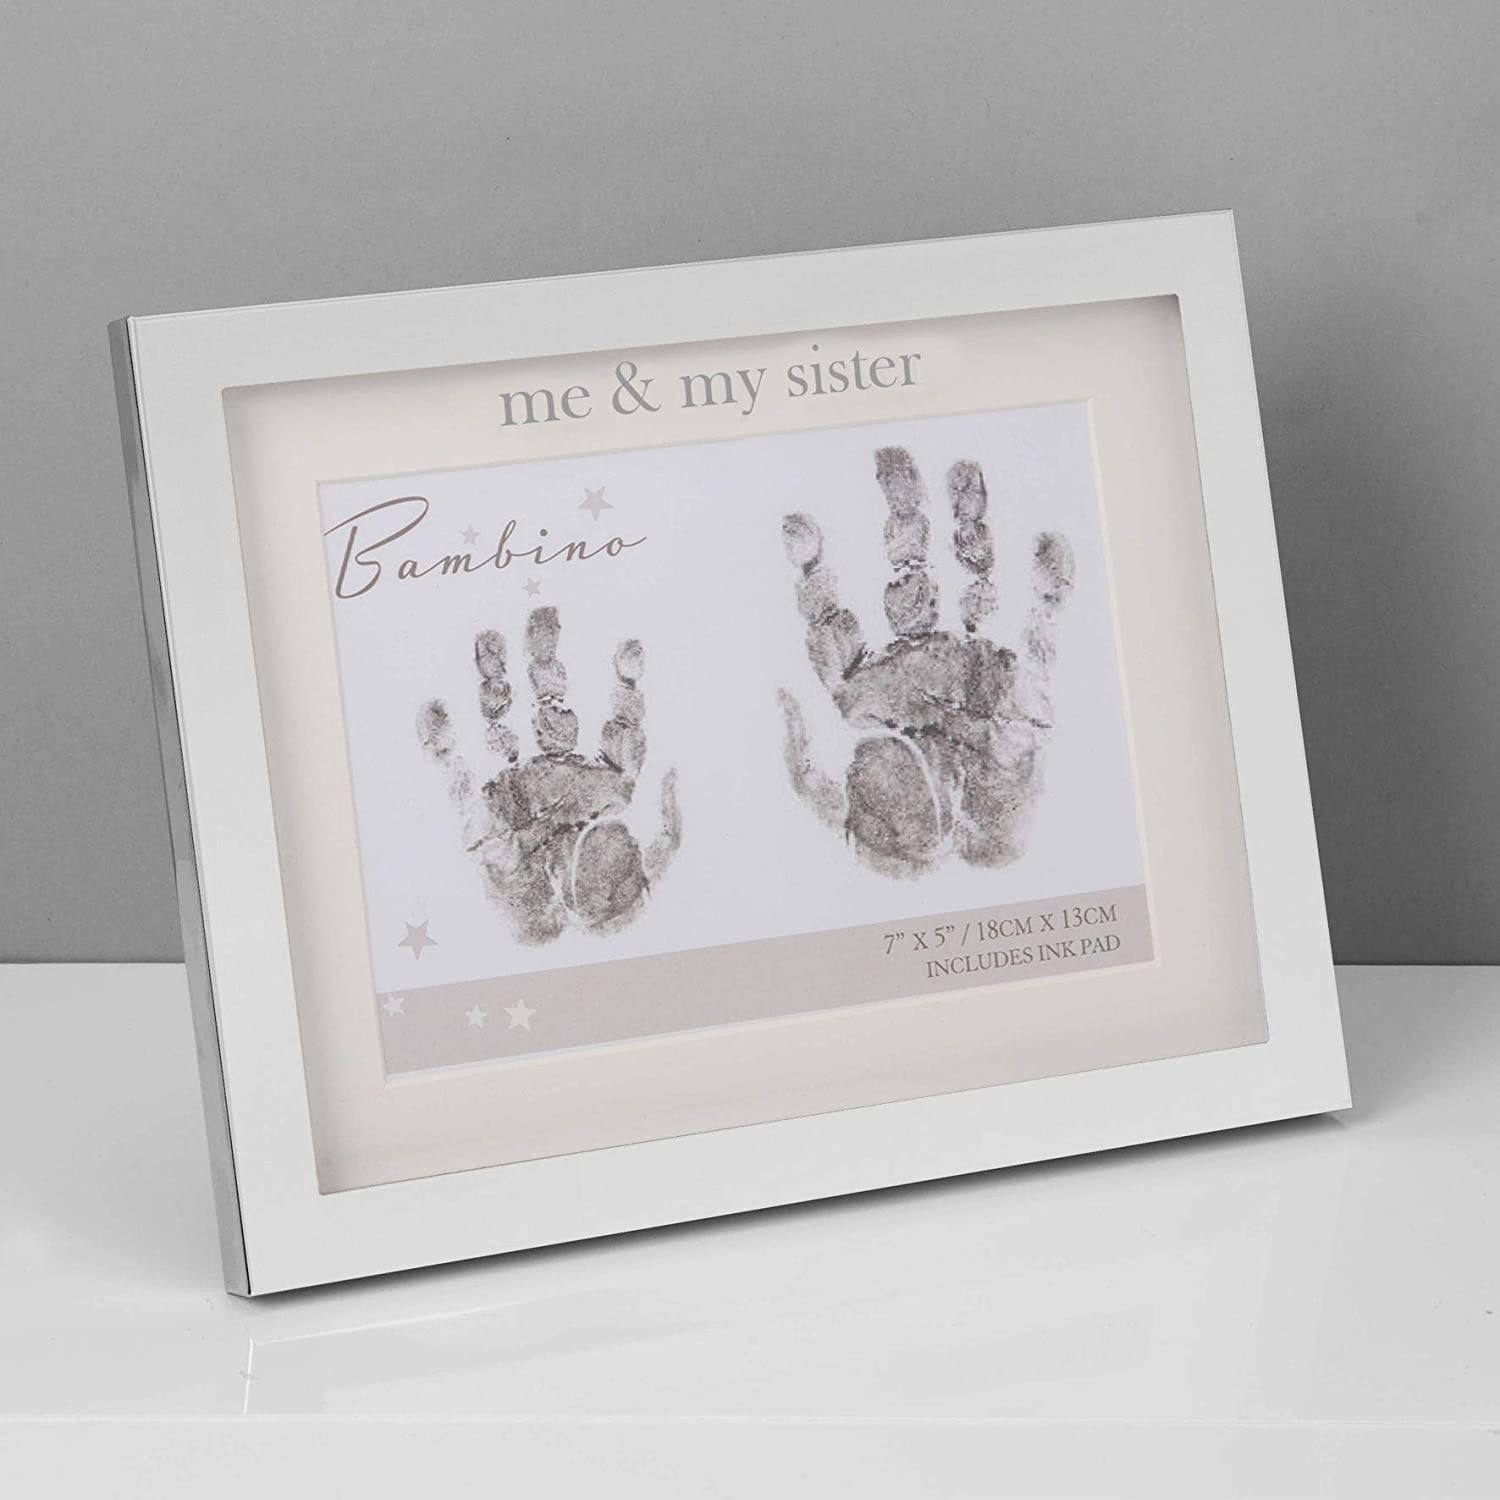 The Gift Experience Bambino Silver Plated Hand Print Frame Me /& My Sister 7x5